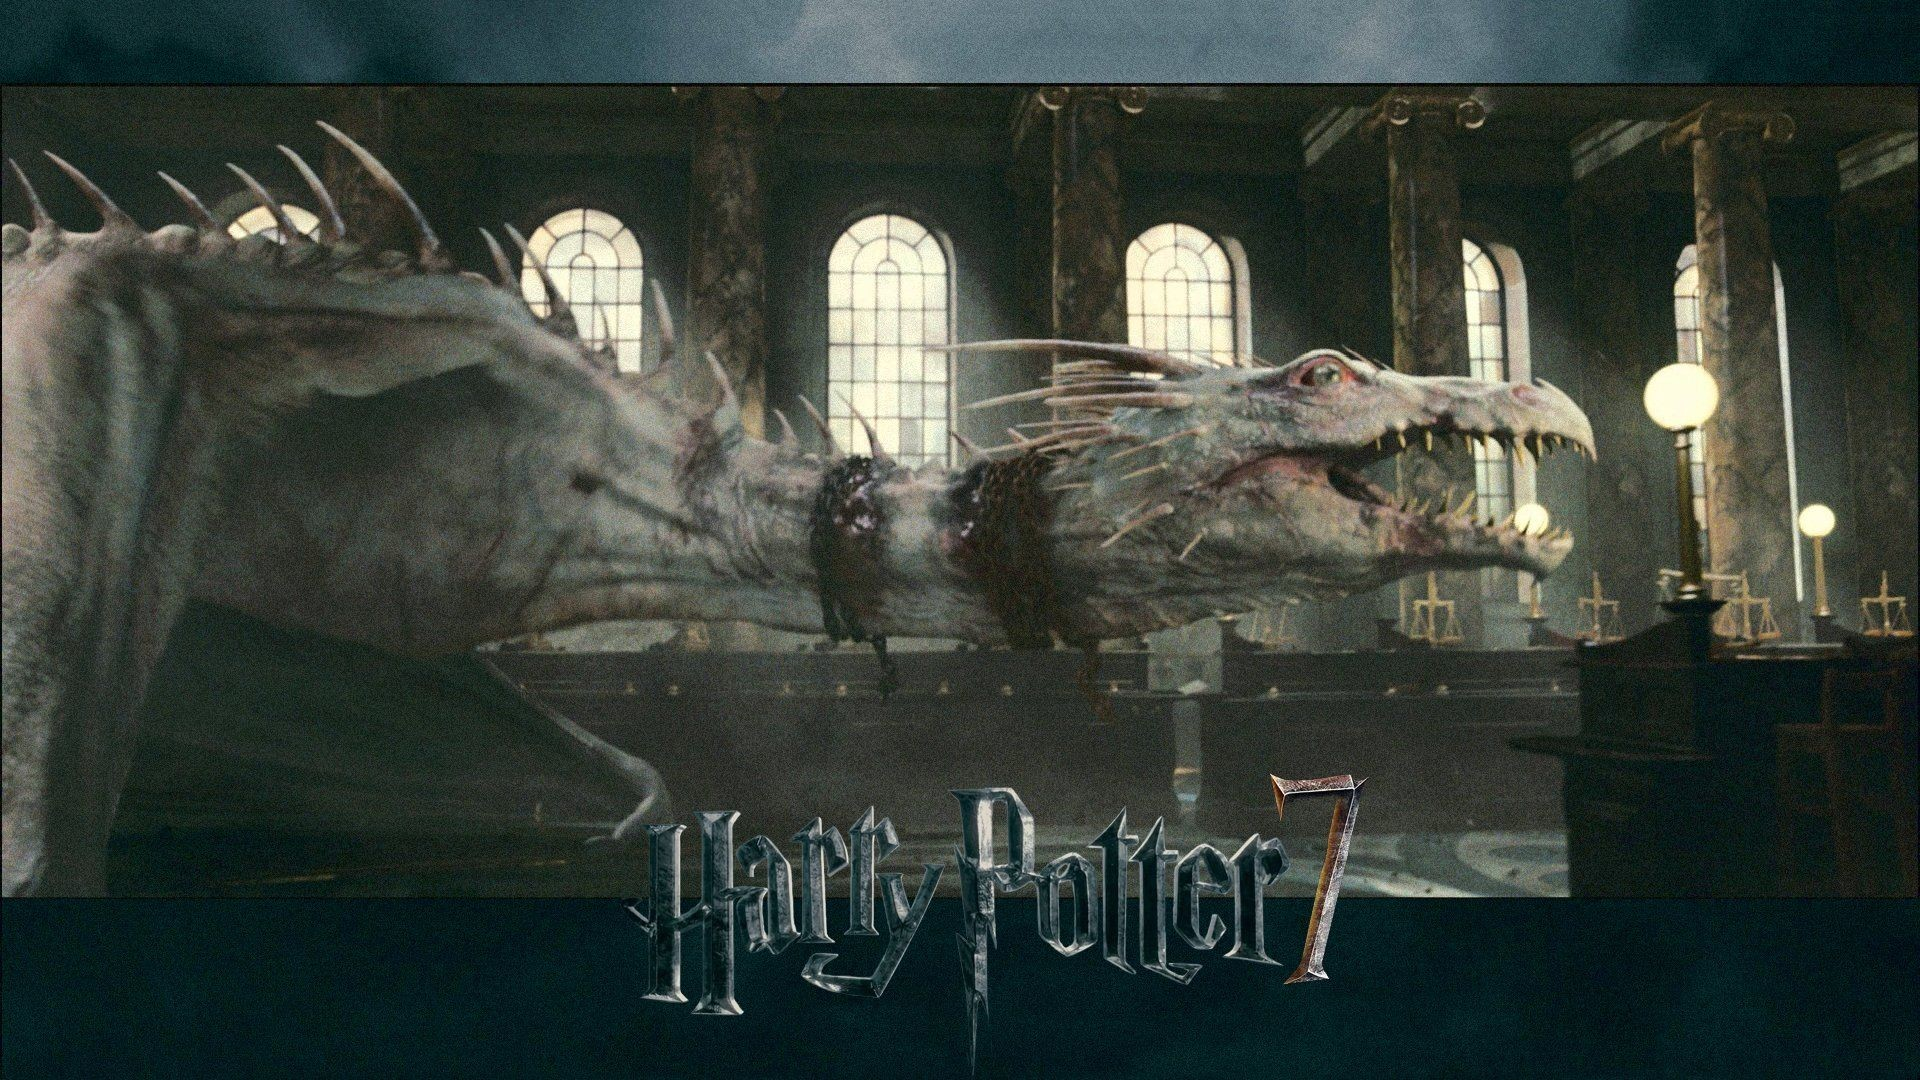 … Harry Potter Deathly Hallows Dragon Wallpaper. Download